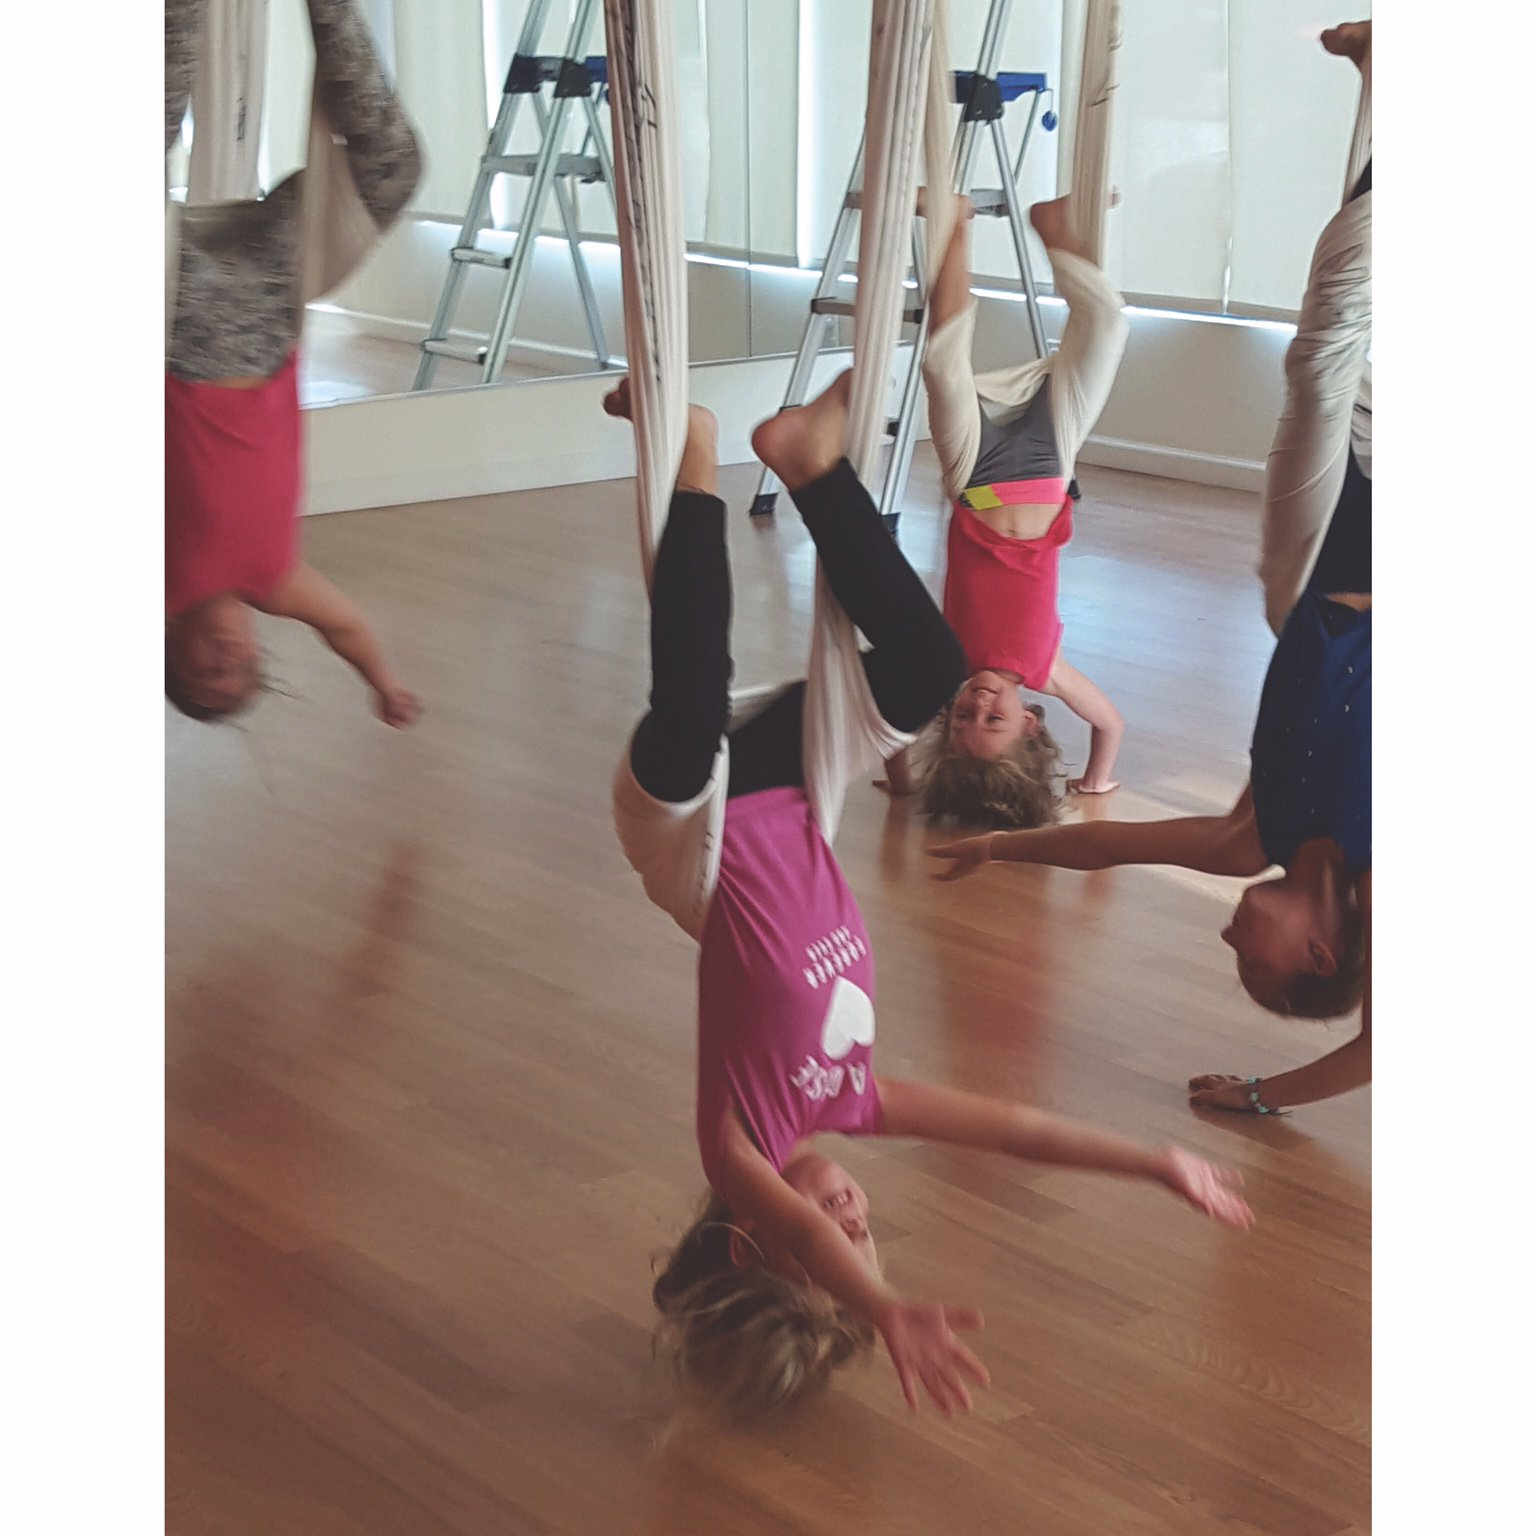 Girl Scouts Nassau On Twitter Way To Go Girls Daisytroop 3060 Earned Their Courageous Strong Petal By Doing Yoga Aerial Poses At Emerge Yoga